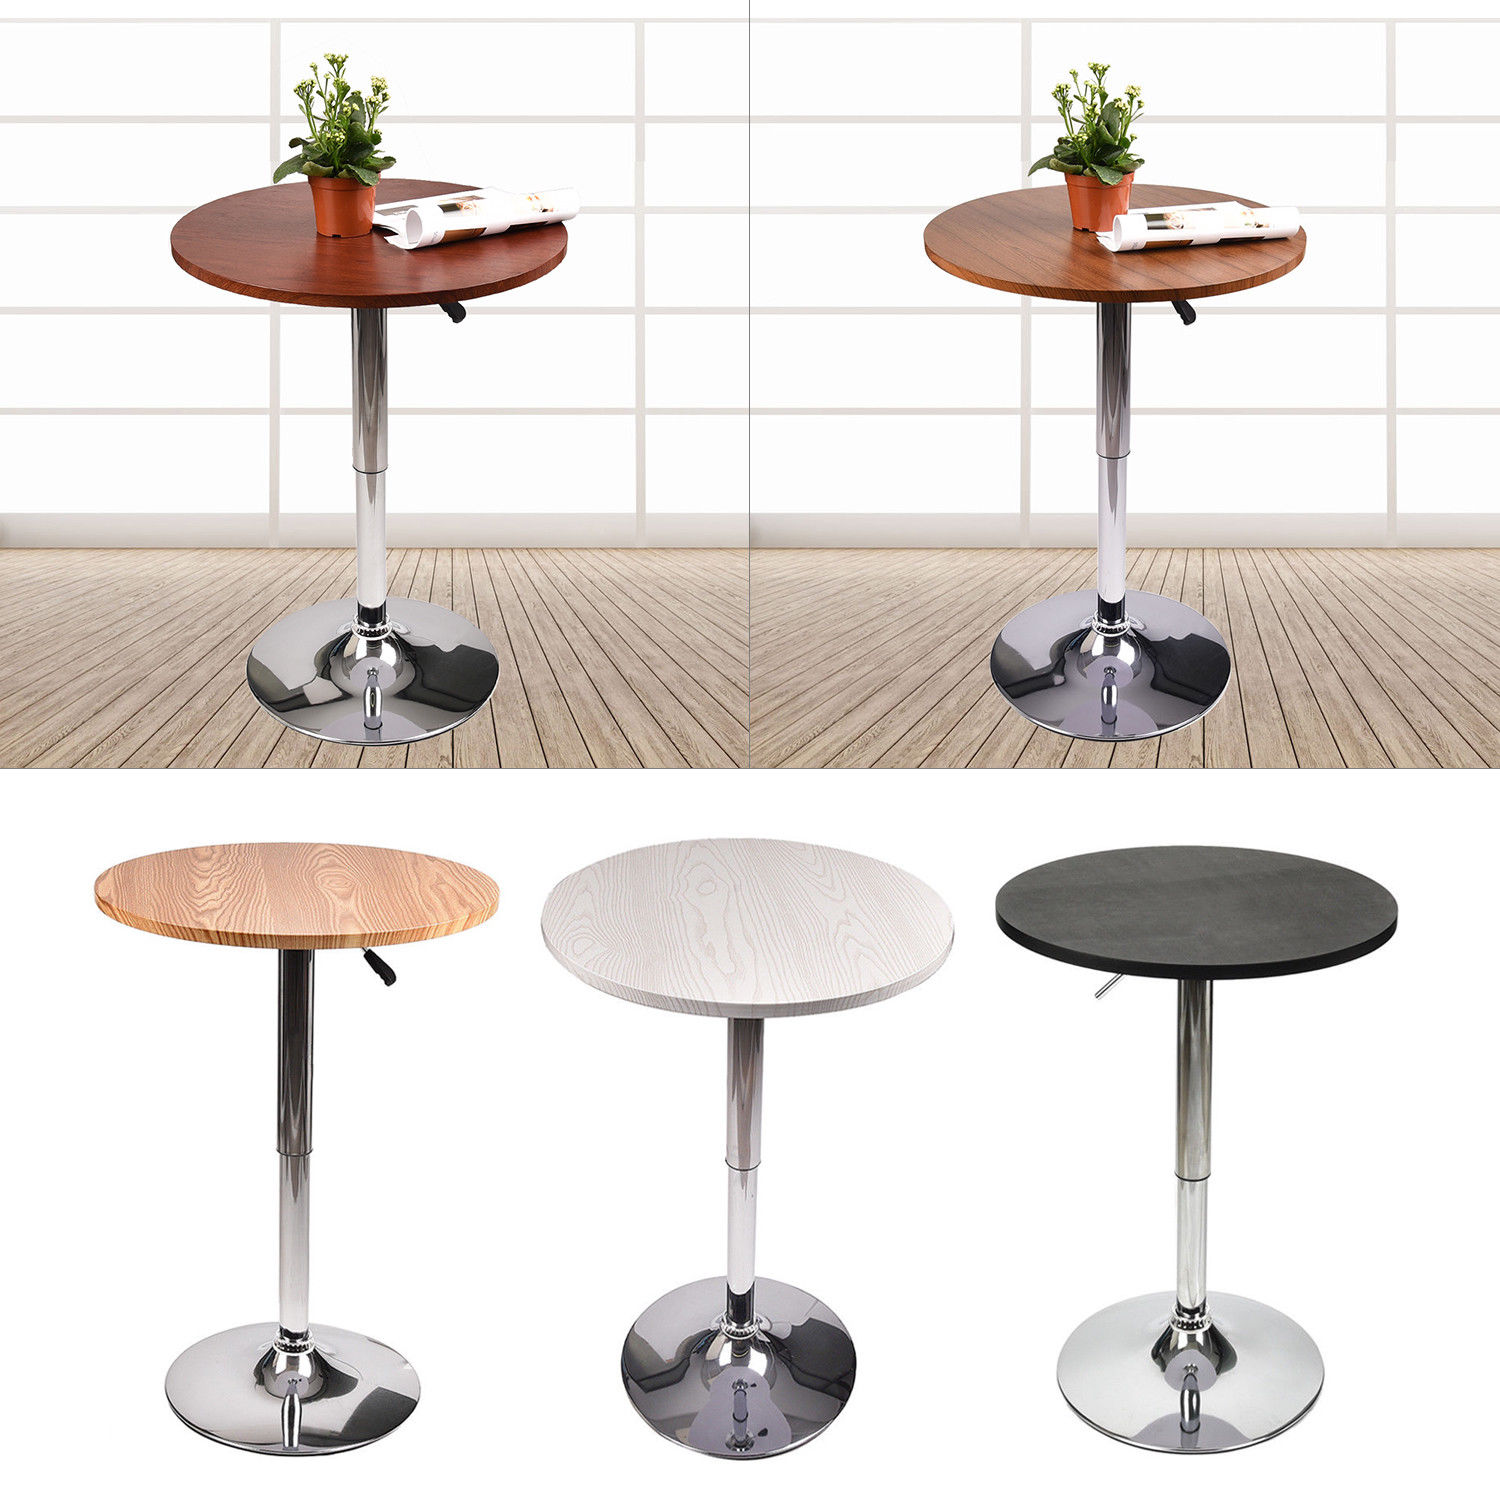 Modern 24'' Bar Table Wood Adjustable Swivel Chrome Pub Counter Top Round Black